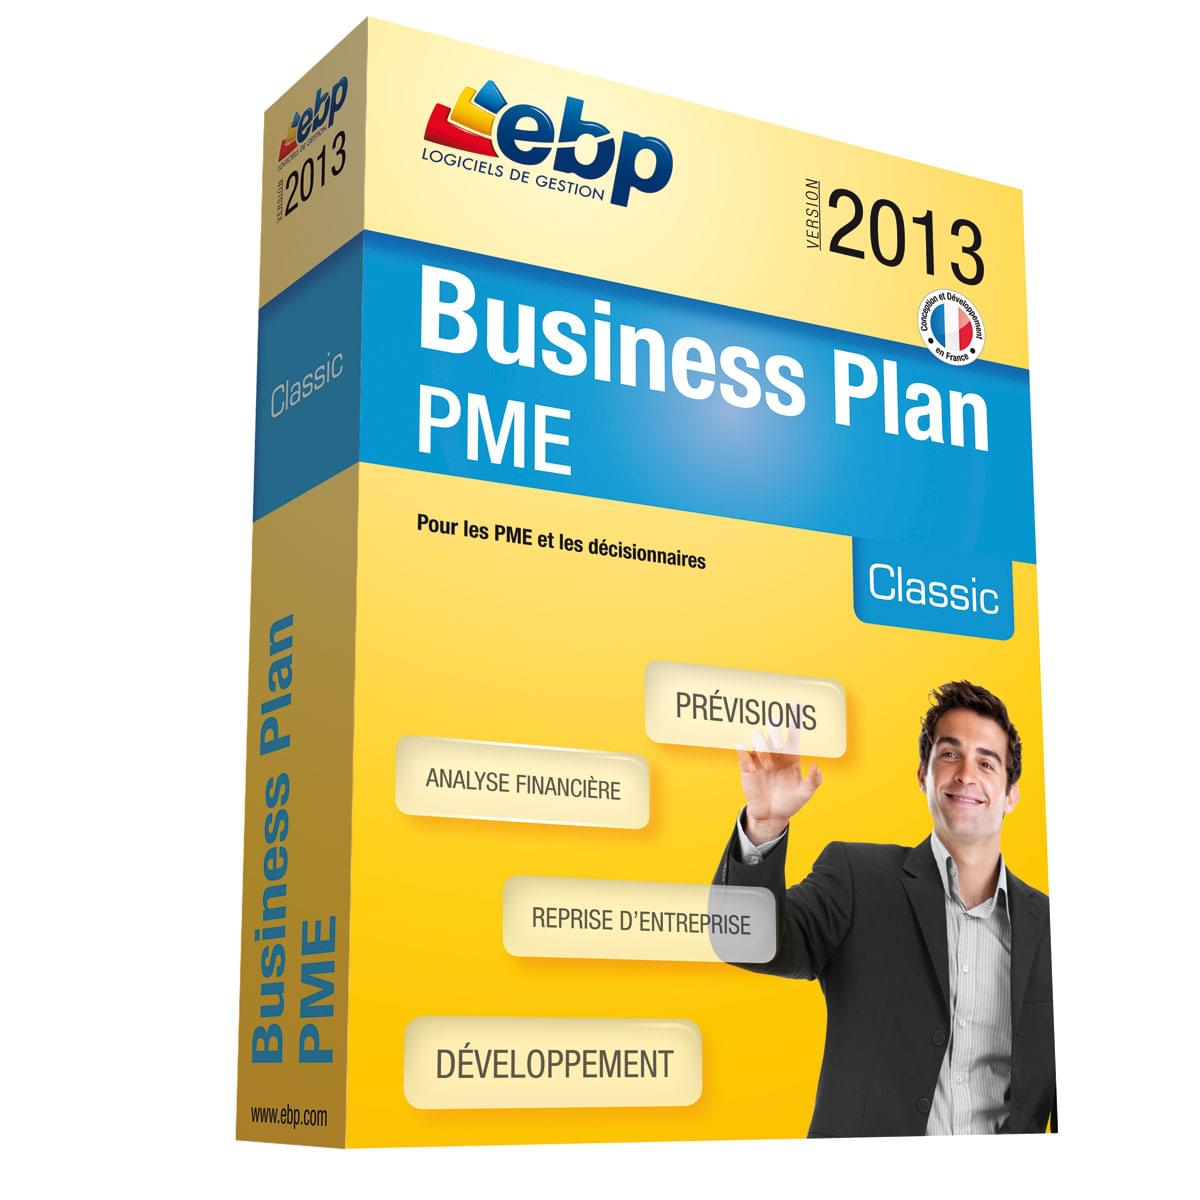 EBP Business Plan PME Classic 2013 - Logiciel application - 0